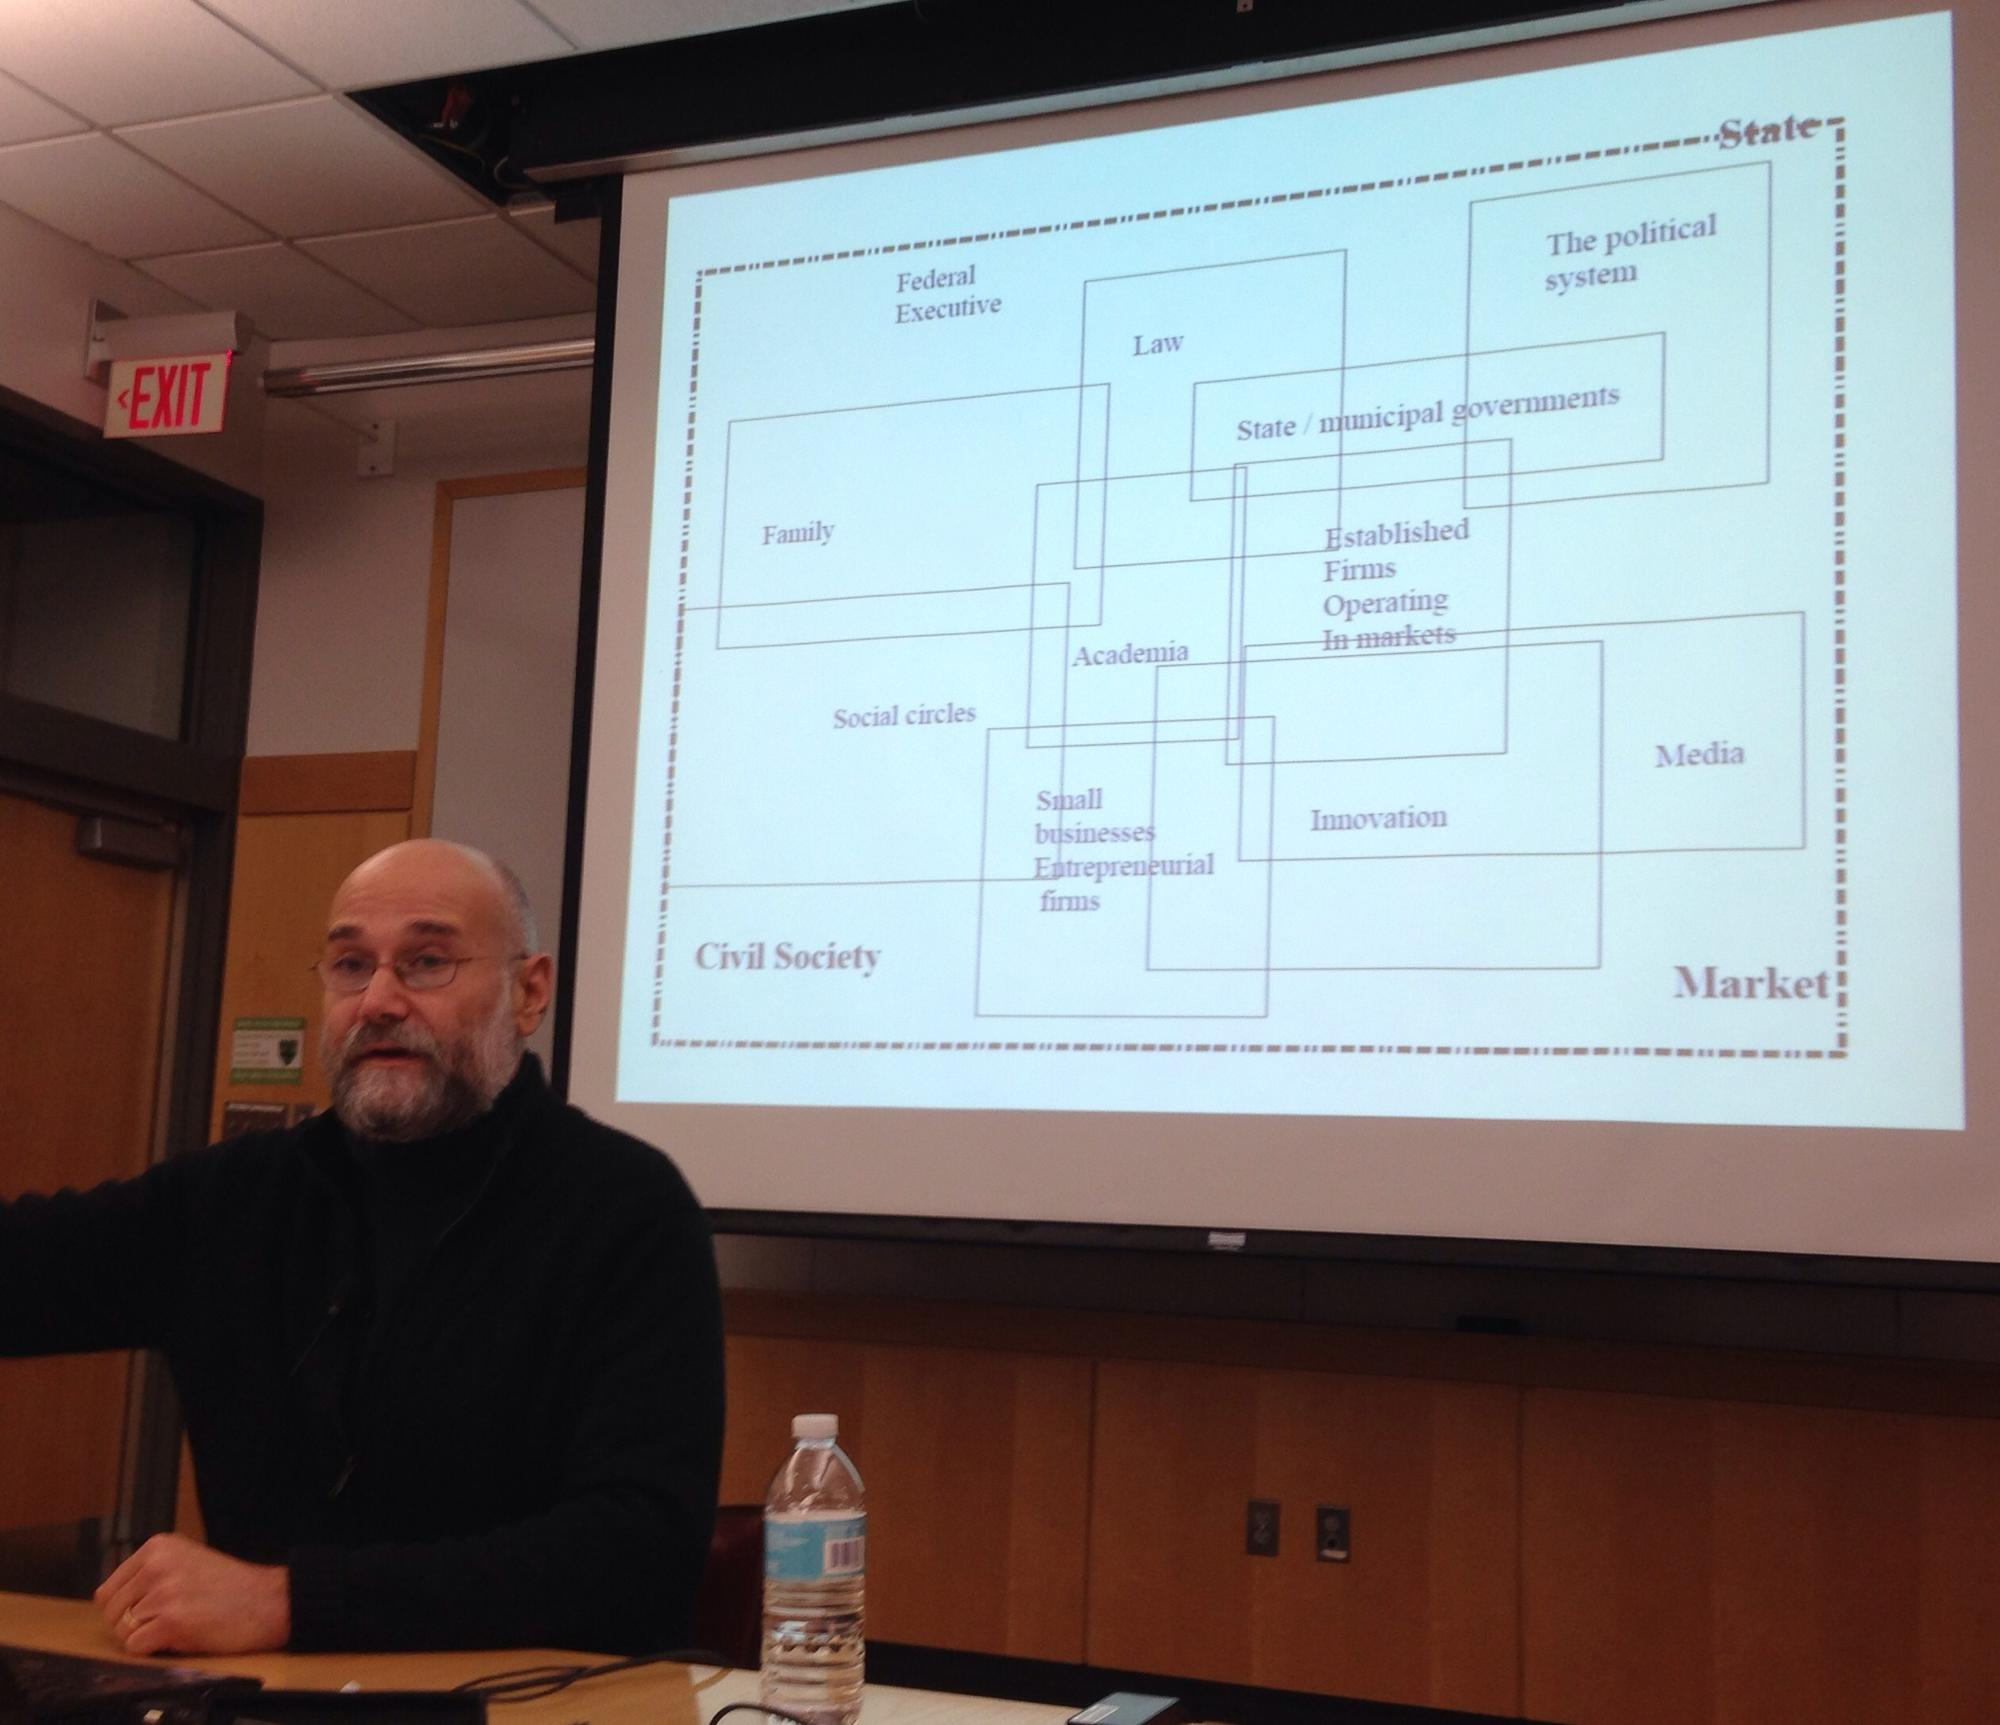 Yochai Benkler discussing the Panopticon-type effect created by NSA bulk surveillance